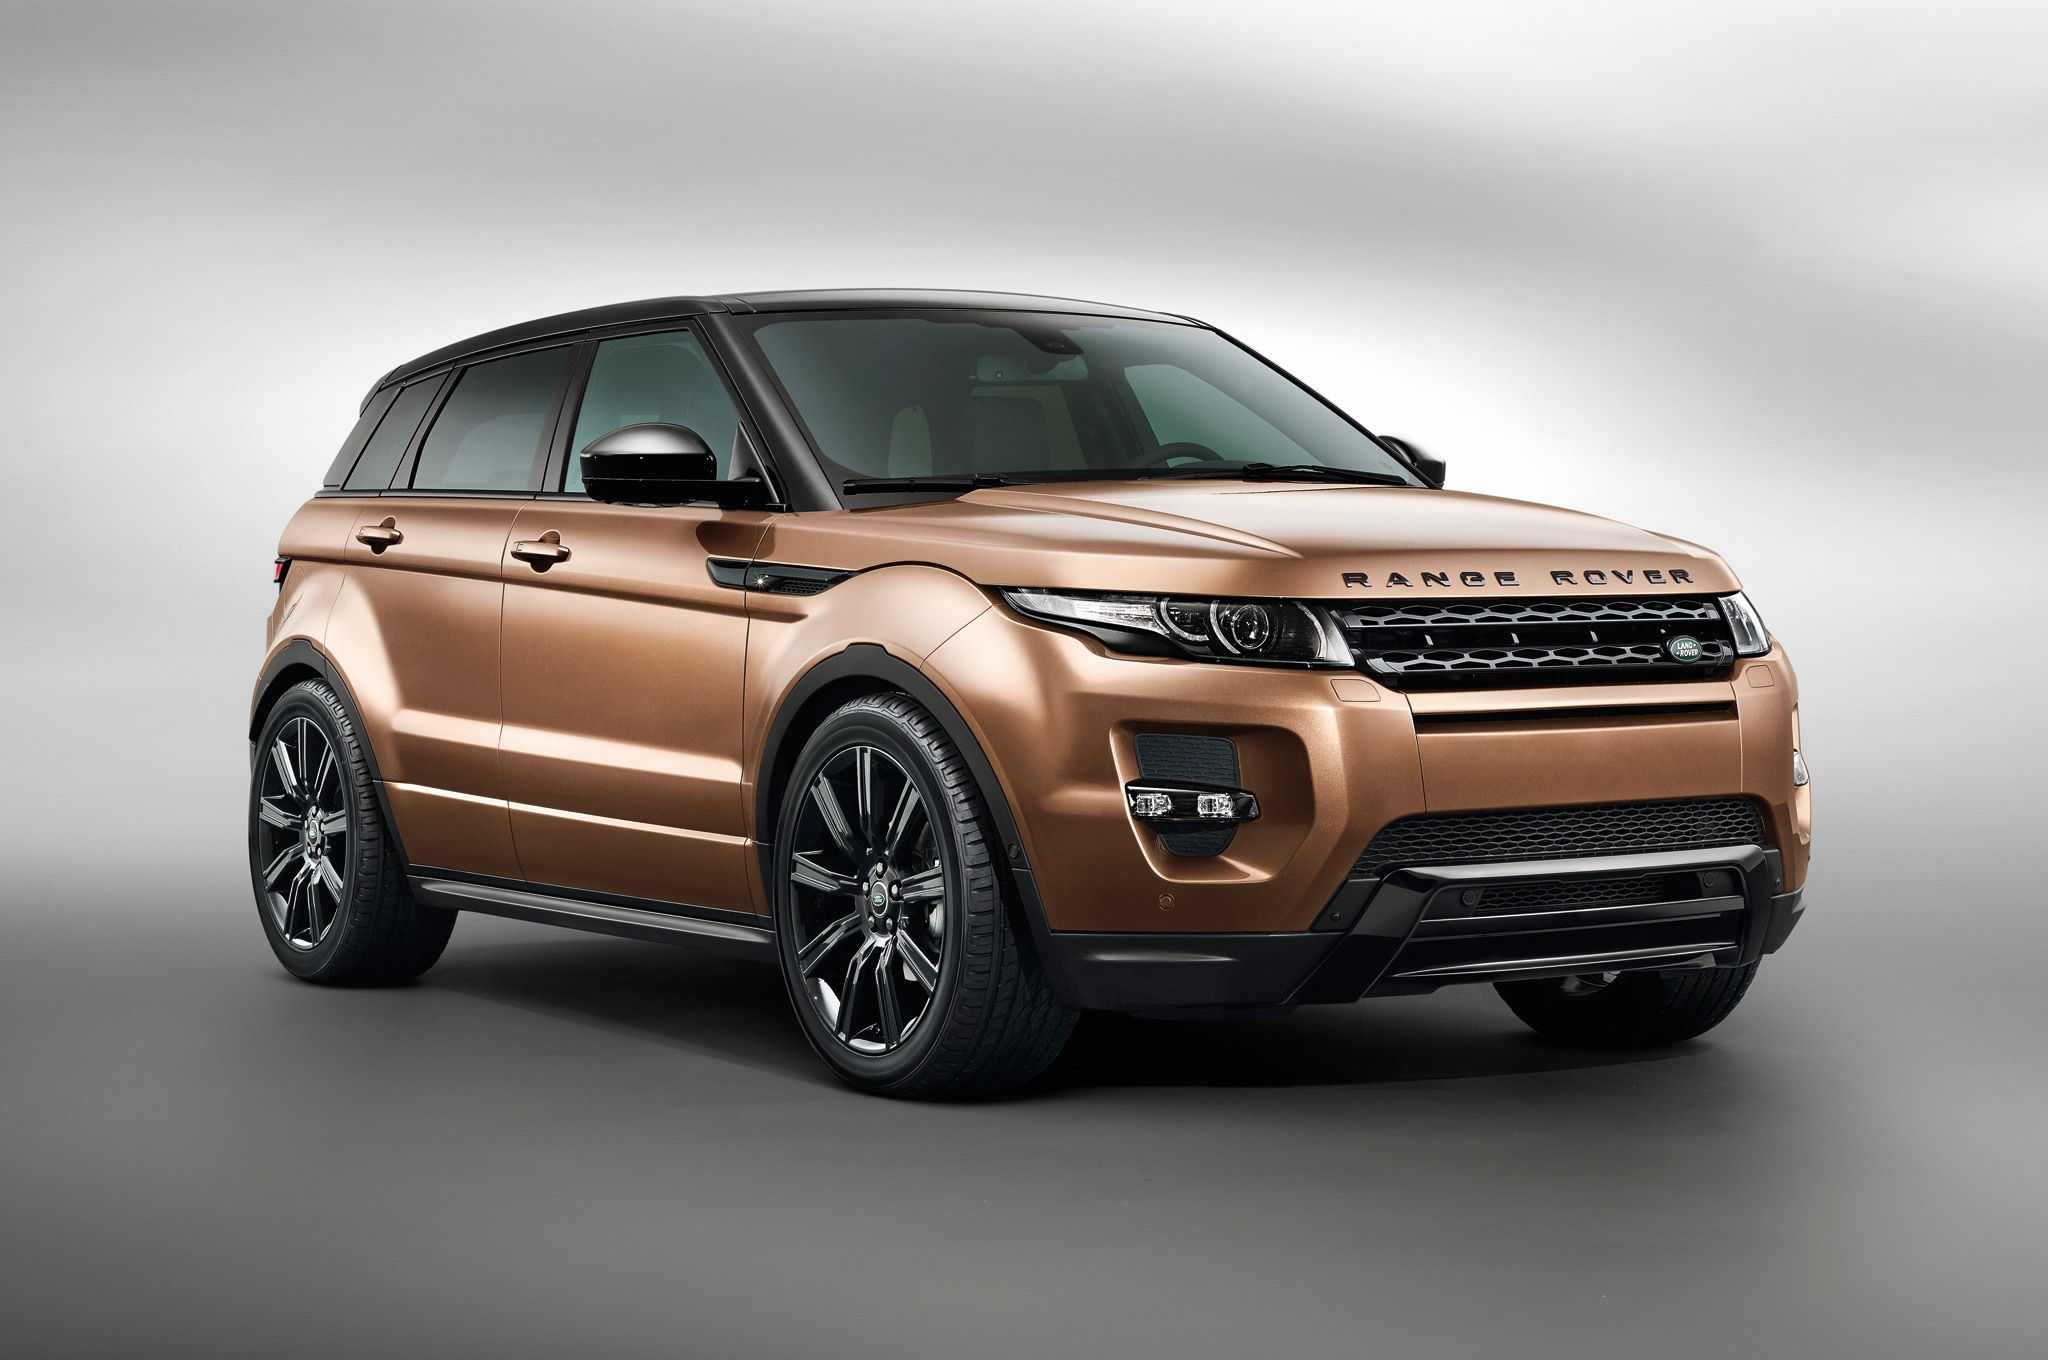 2014 land rover range rover evoque around the block. Black Bedroom Furniture Sets. Home Design Ideas